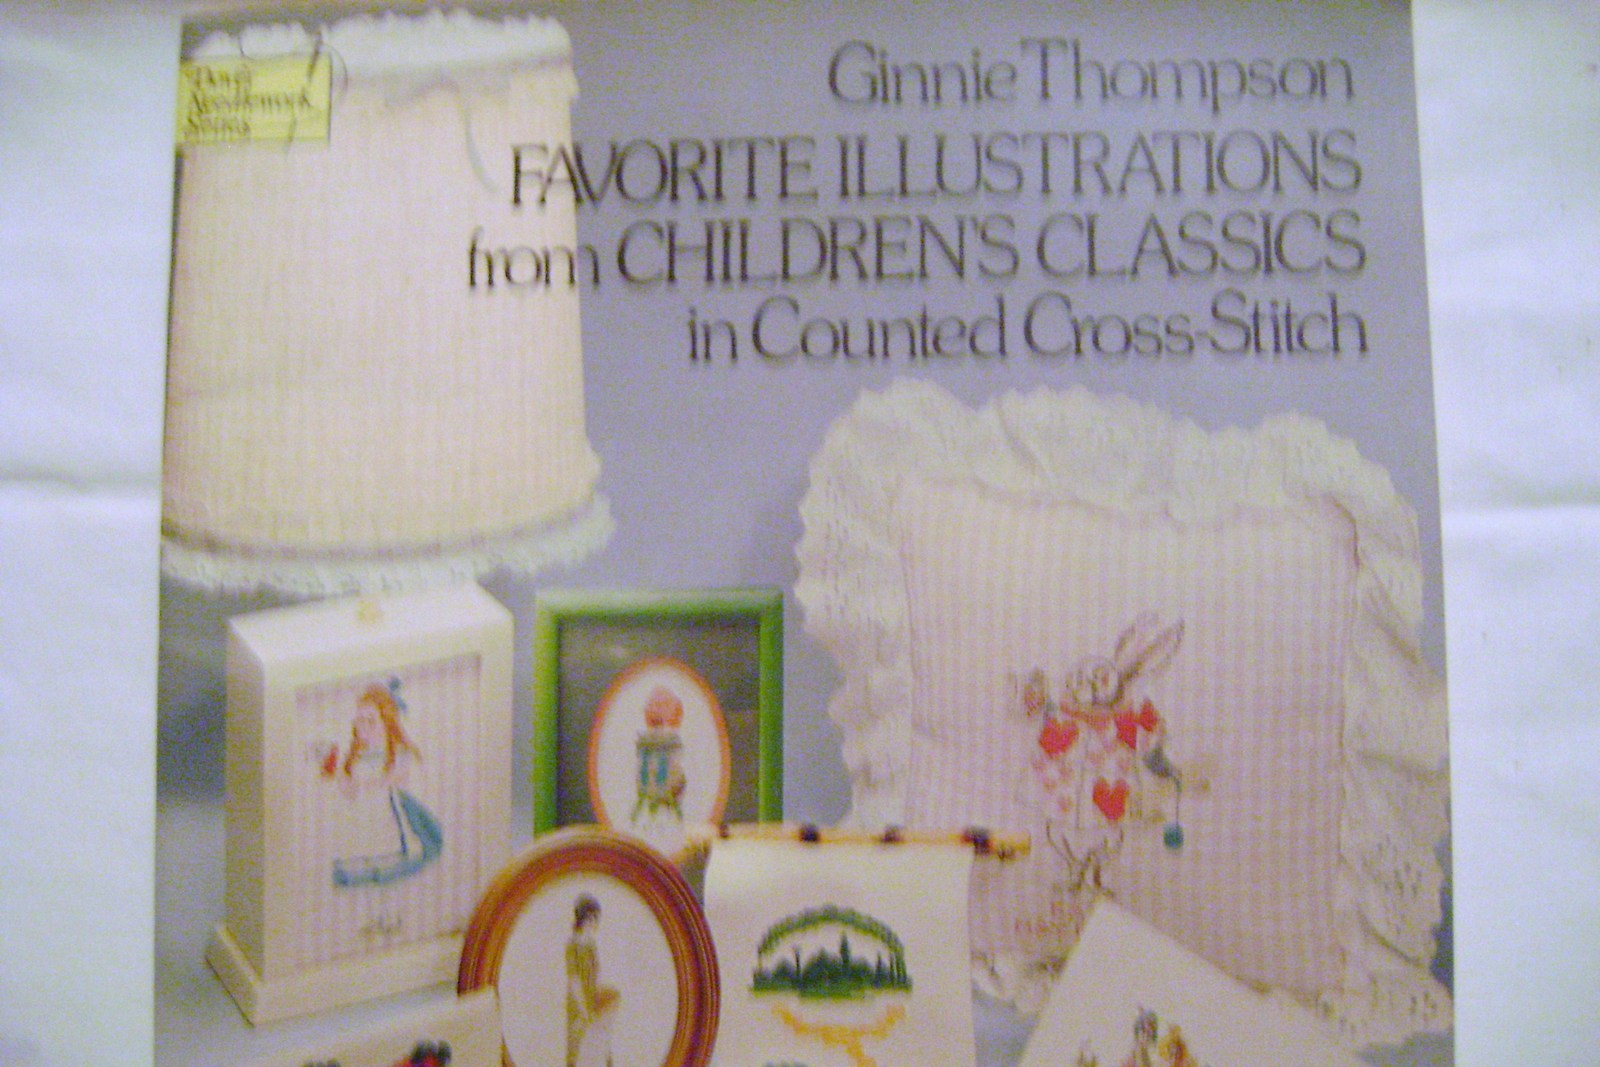 Ginnie Thompson Favorite Illustrations Childhood Classics Cross- Stitch